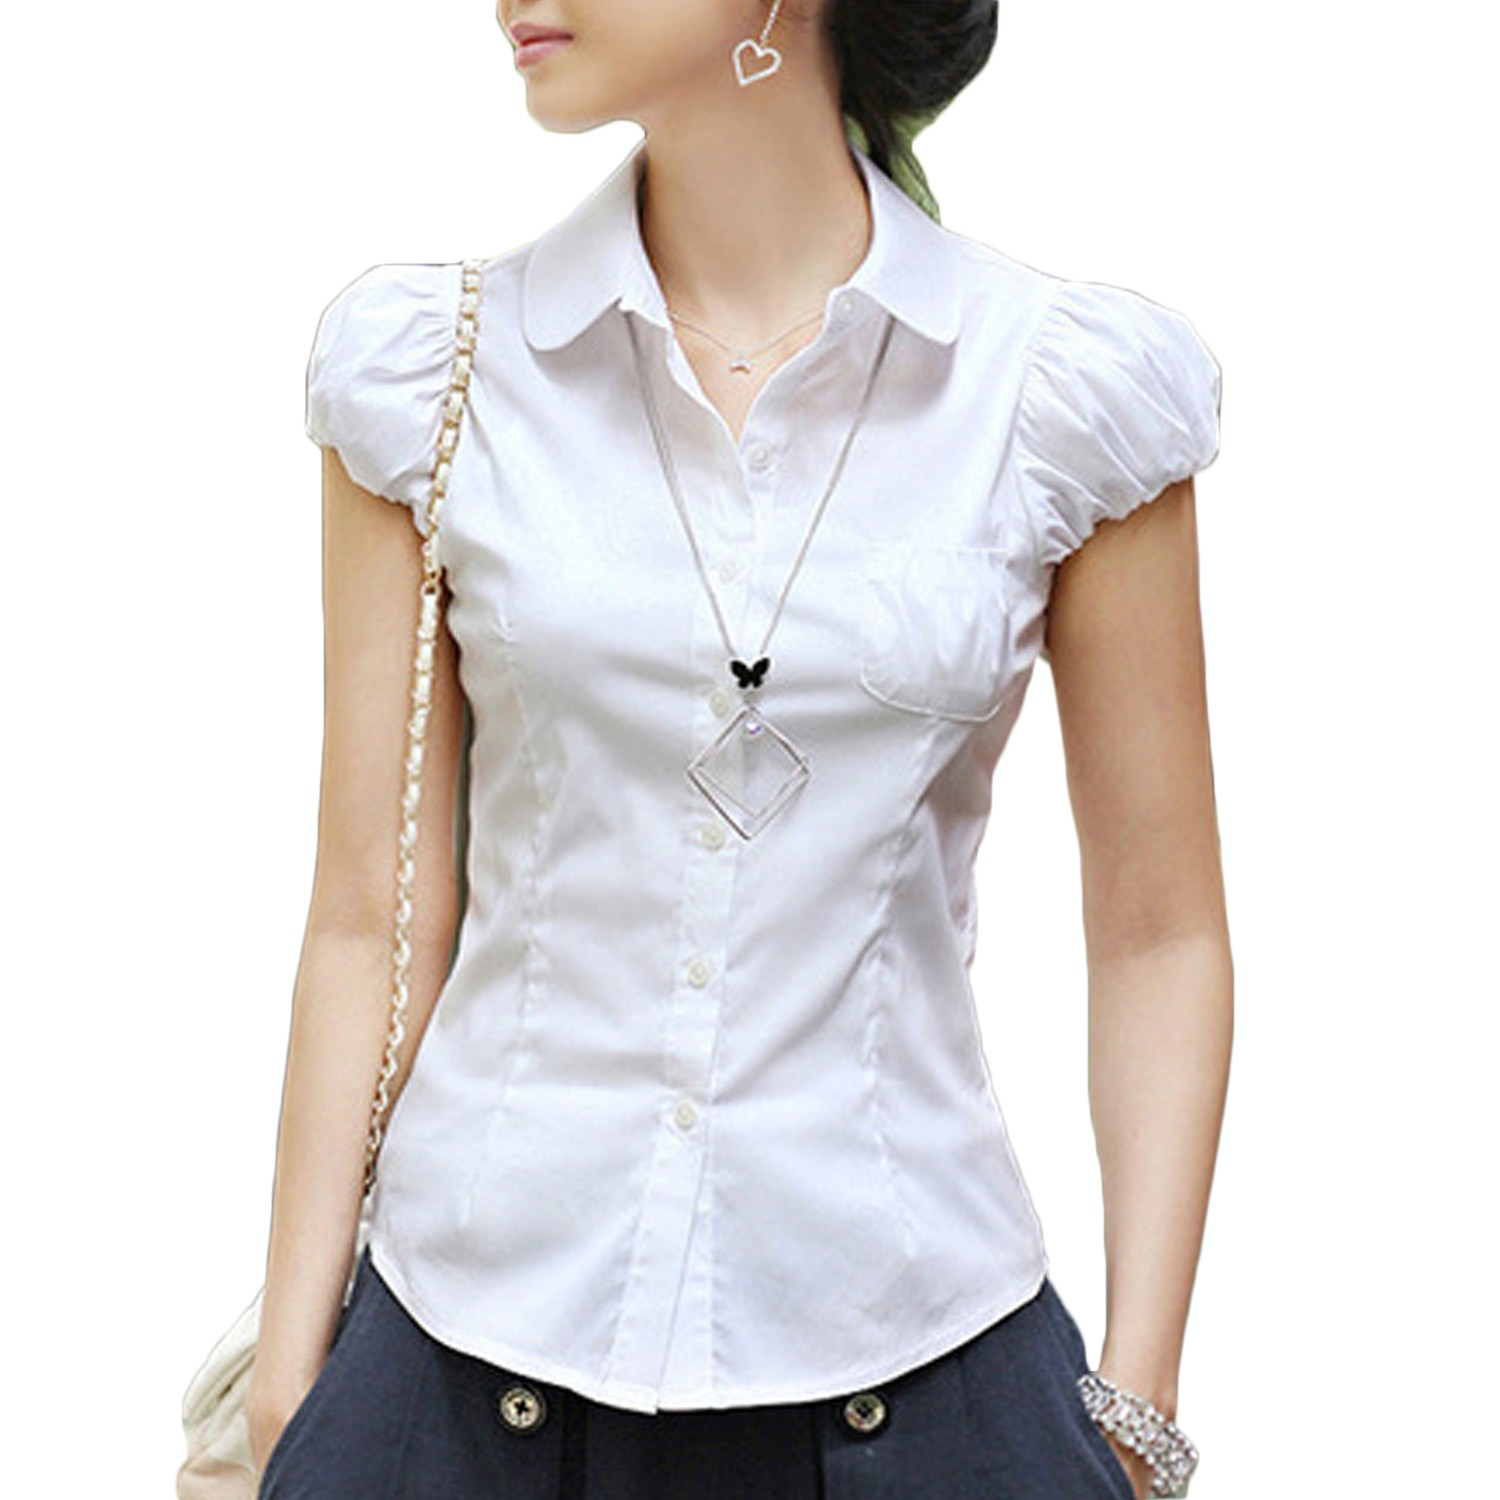 27 Excellent Fitted Womens Dress Shirts